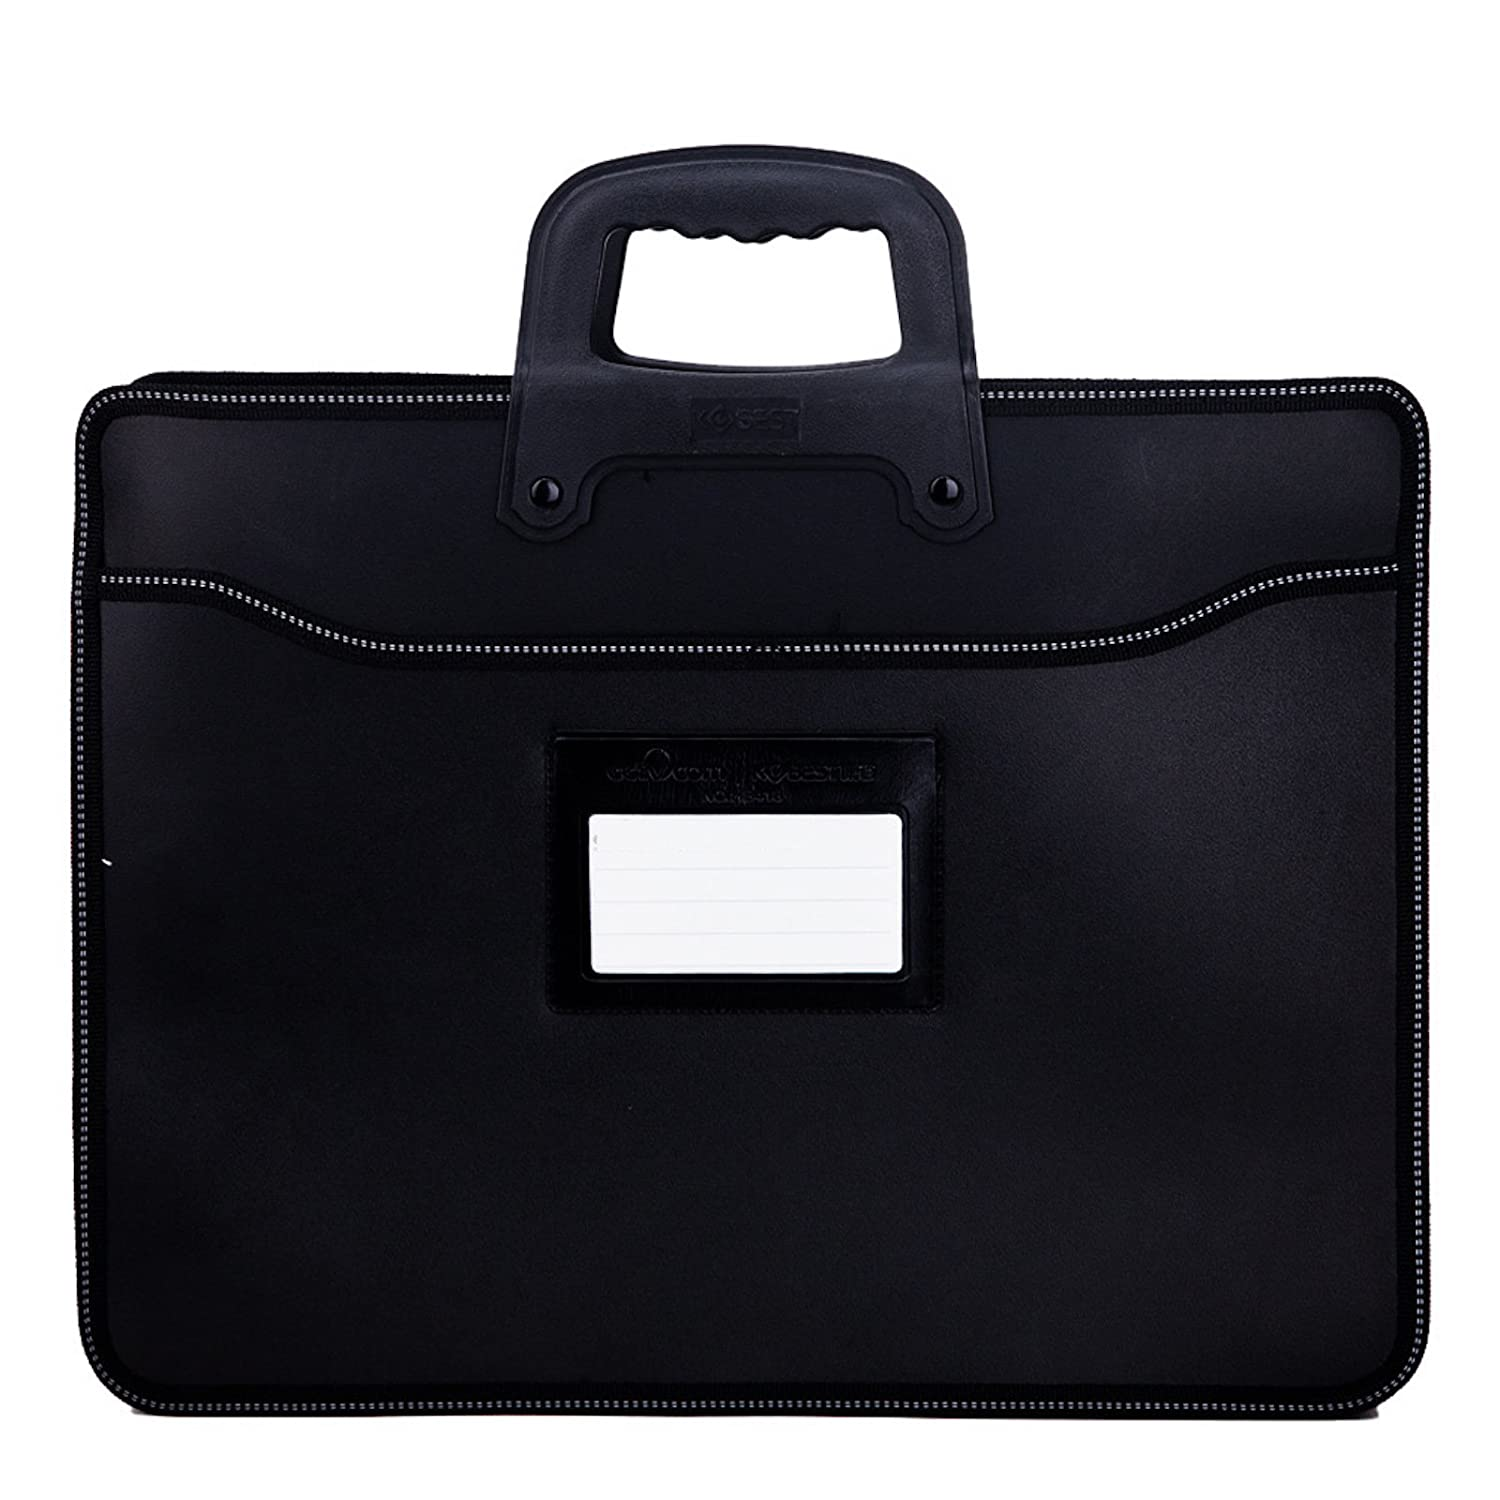 WSLCN Business Sacoche Porte Documents Serviette Porte-documents à Main Rangement Dossiers Trieur A4 Documents Homme Portable Sac et Housse Pour Bureau Commercial Ordinateur Portable Noir BB0456